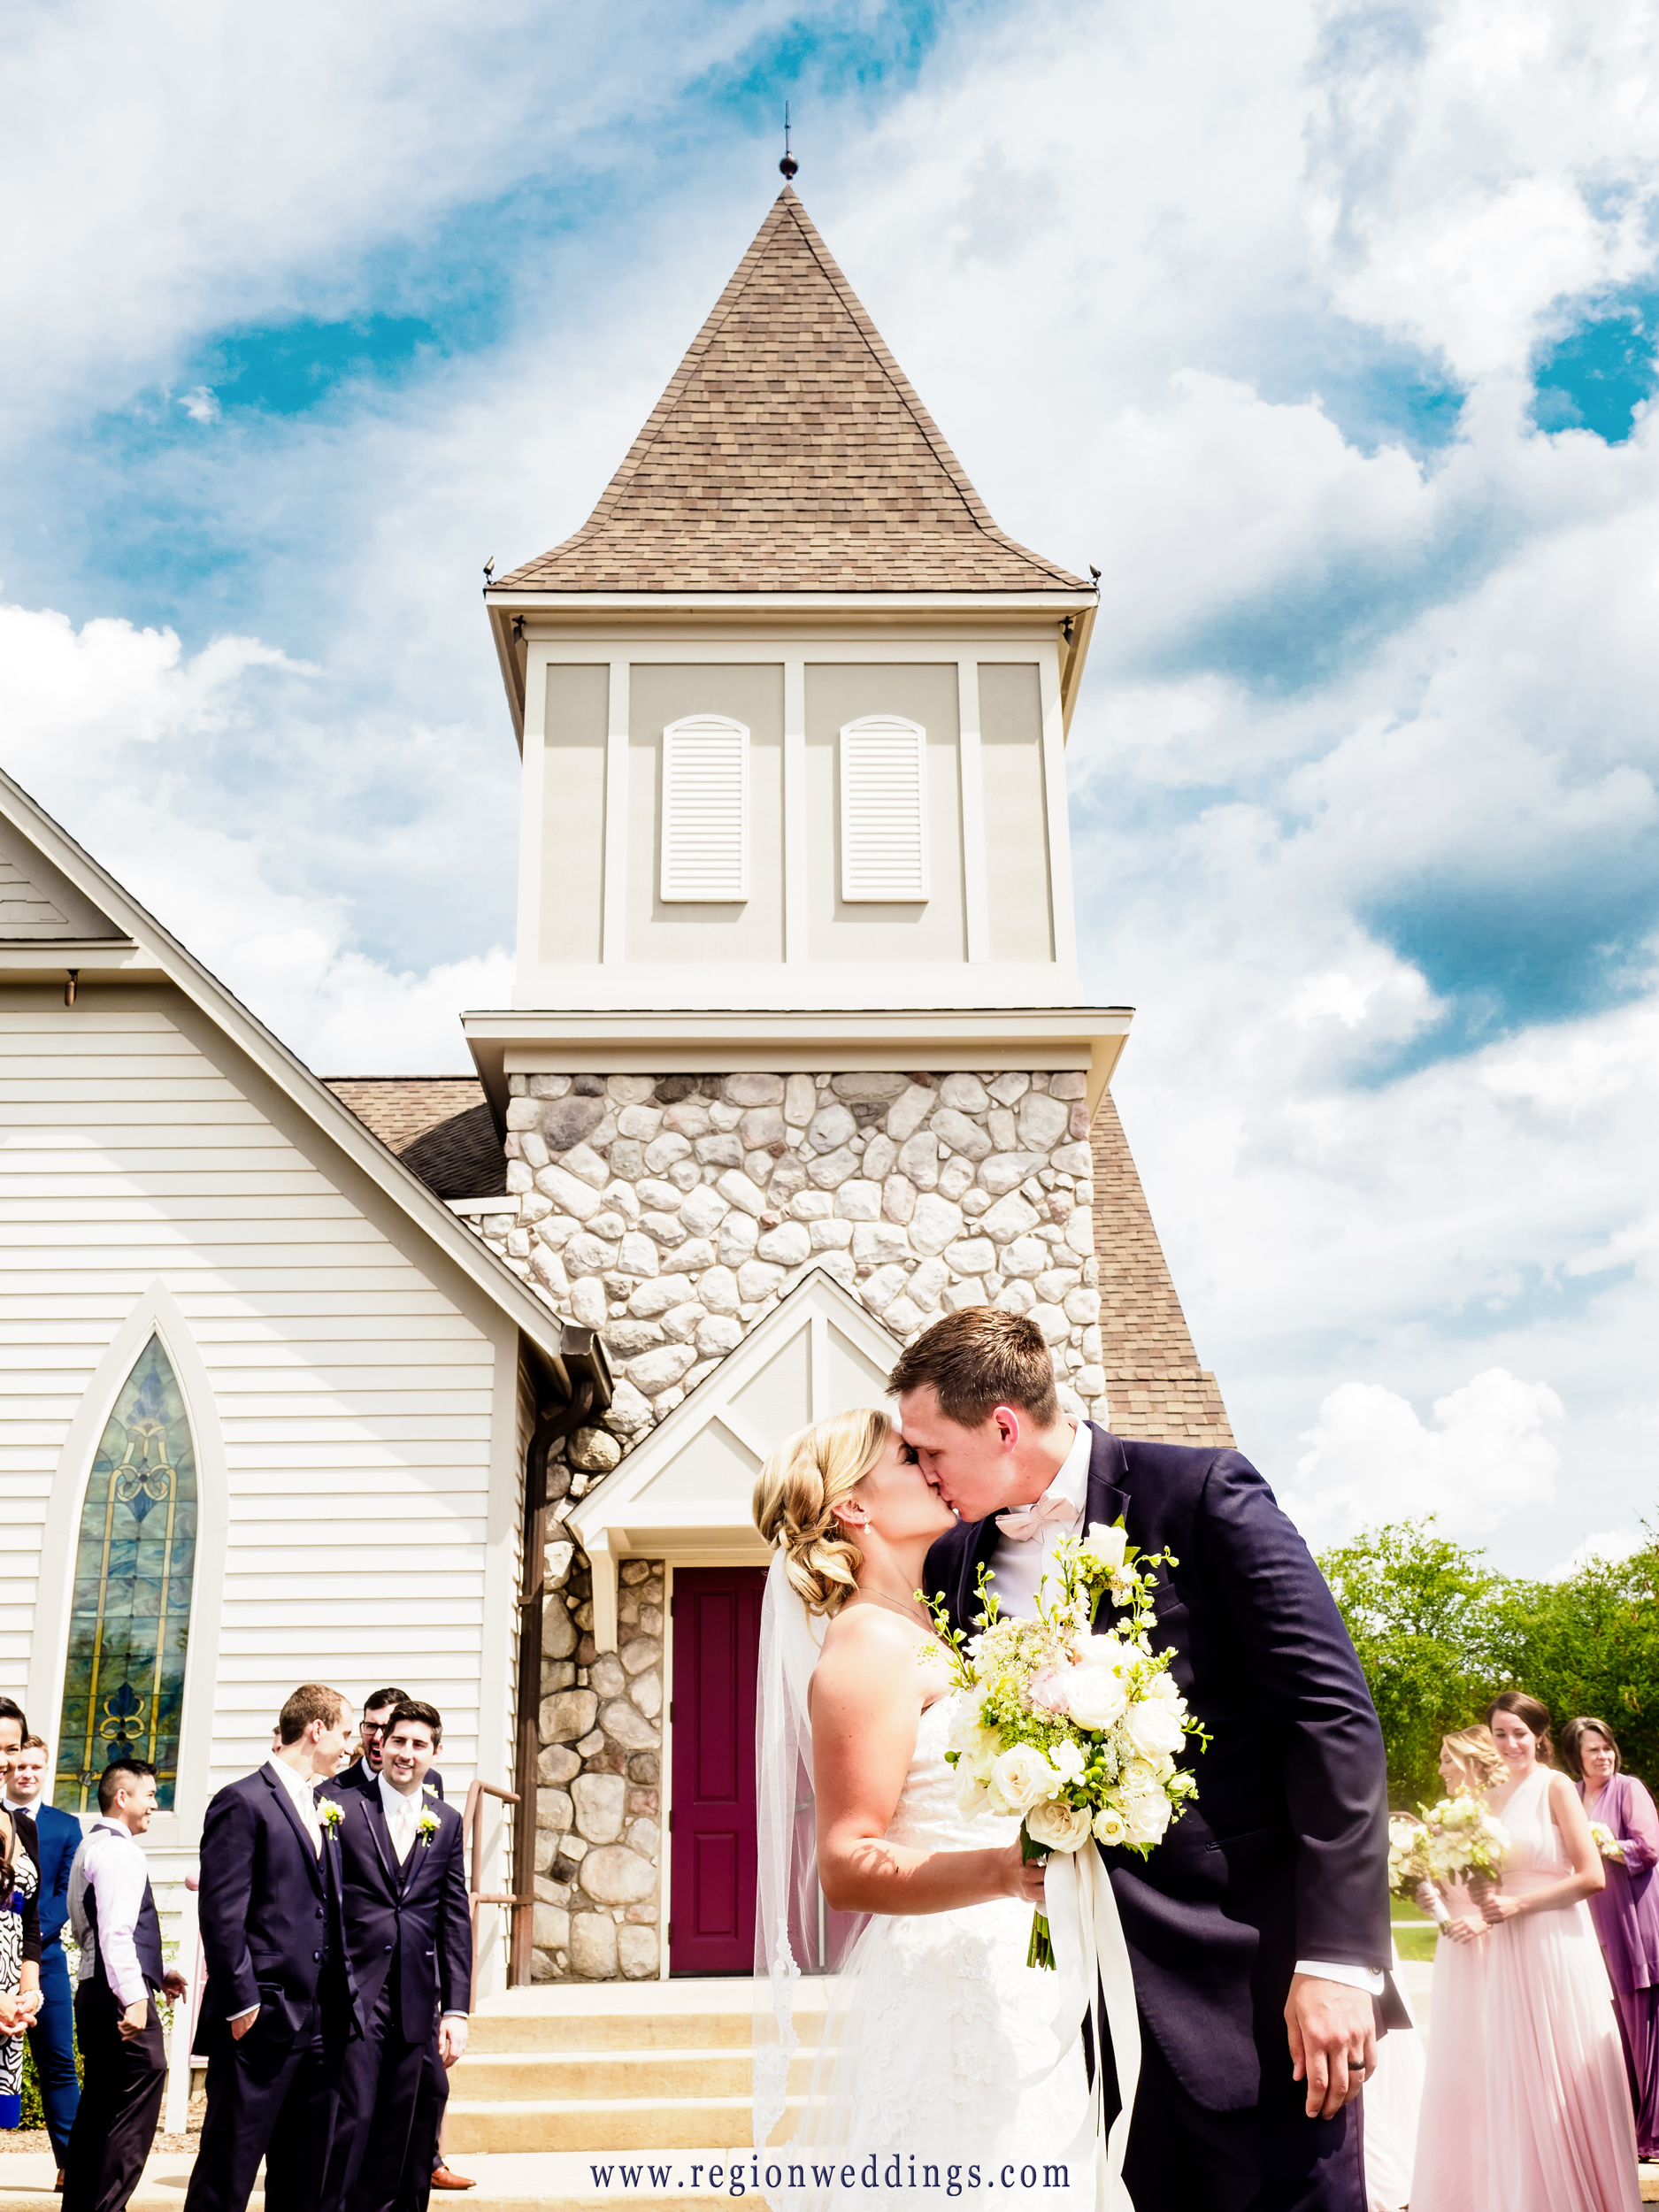 The bride and groom kiss as they exit the Chapel at Aberdeen Manor.